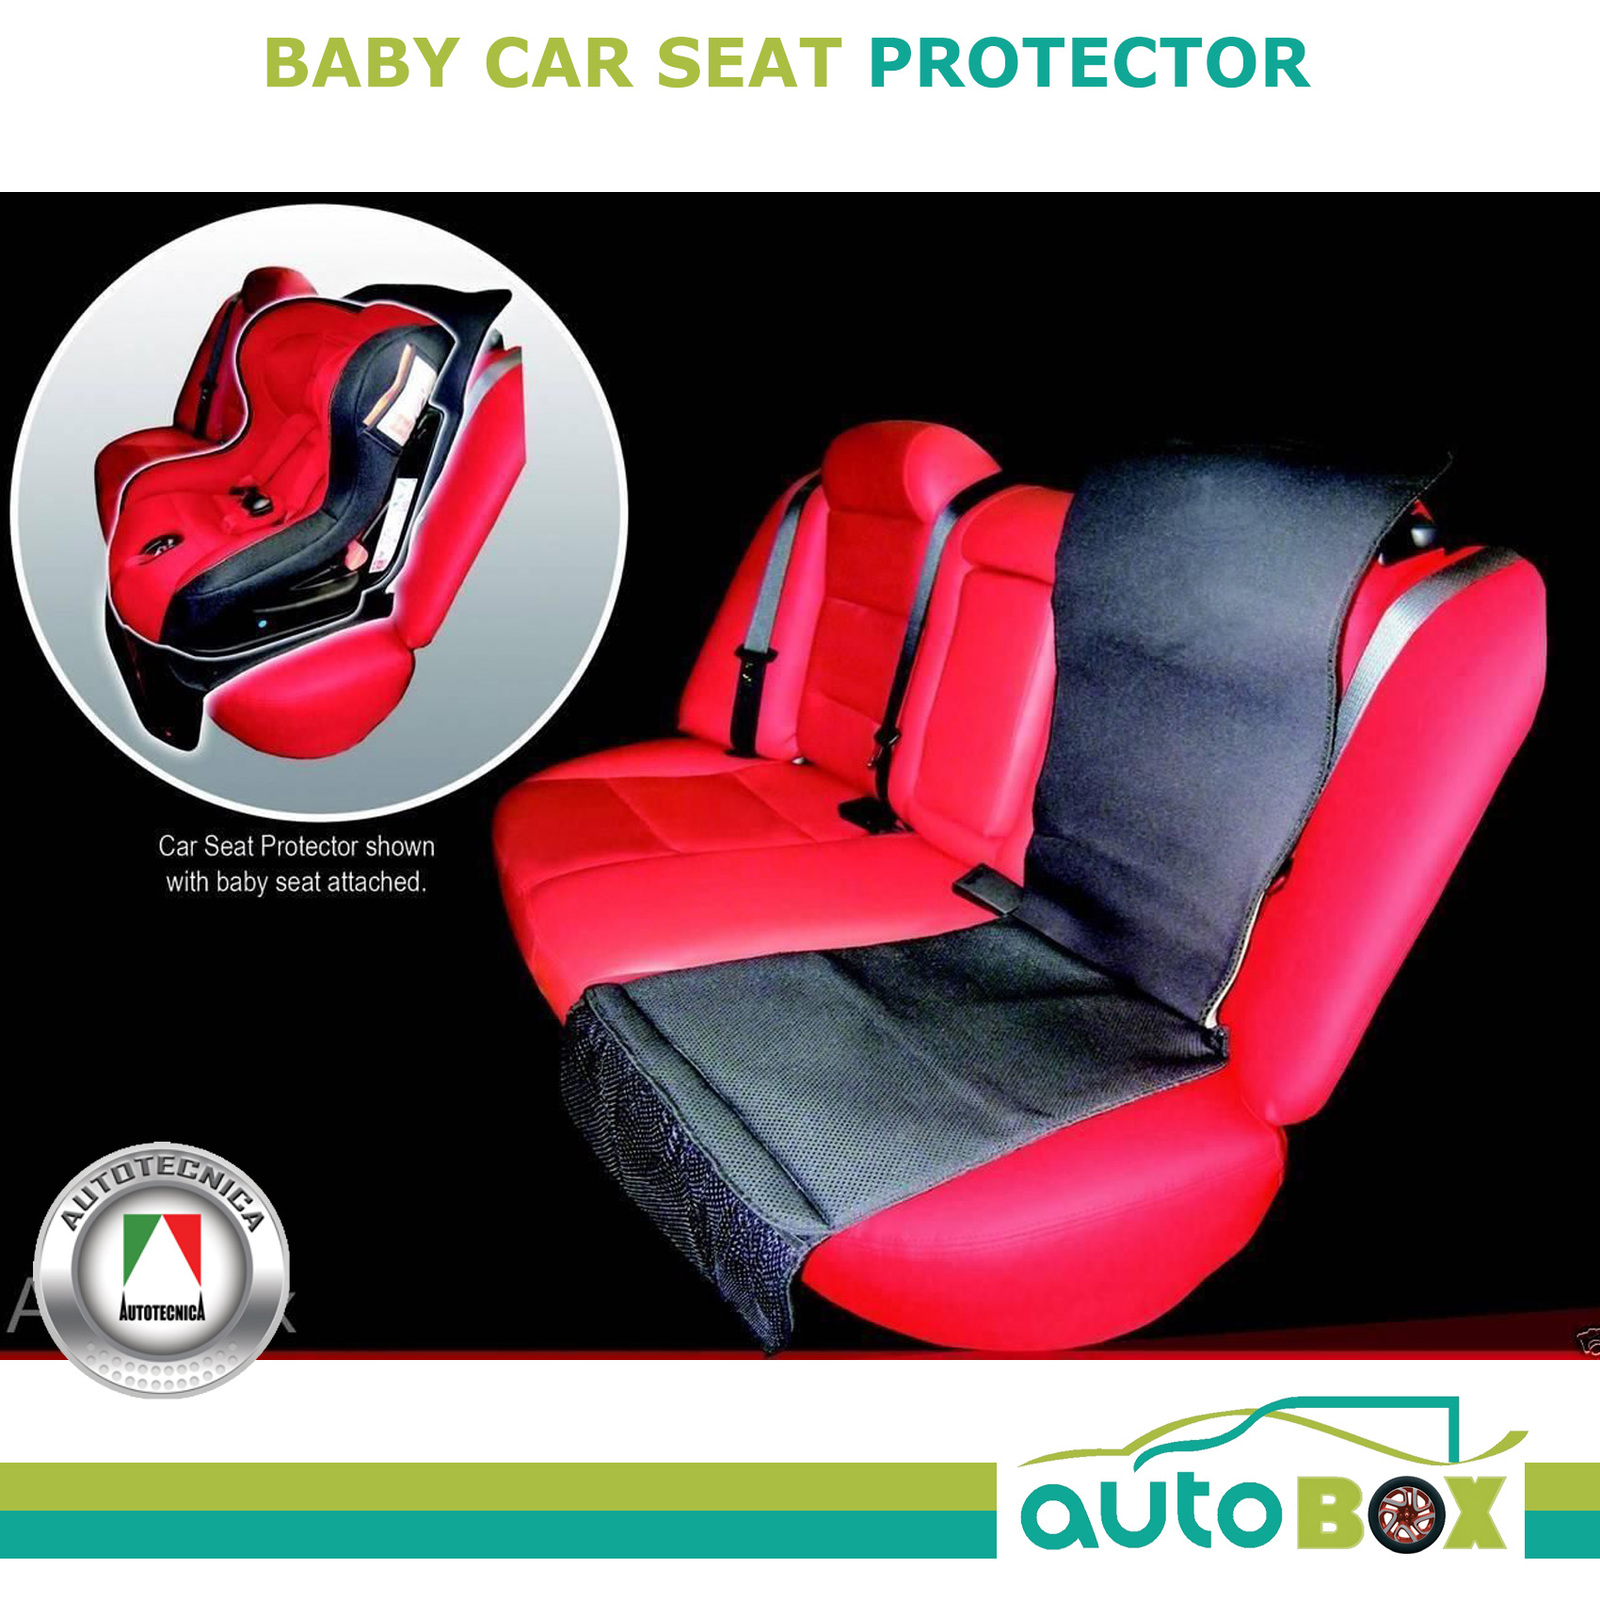 2in1 CAR BABY SEAT PROTECTOR Mat & Travel Organizer Washable Booster ...